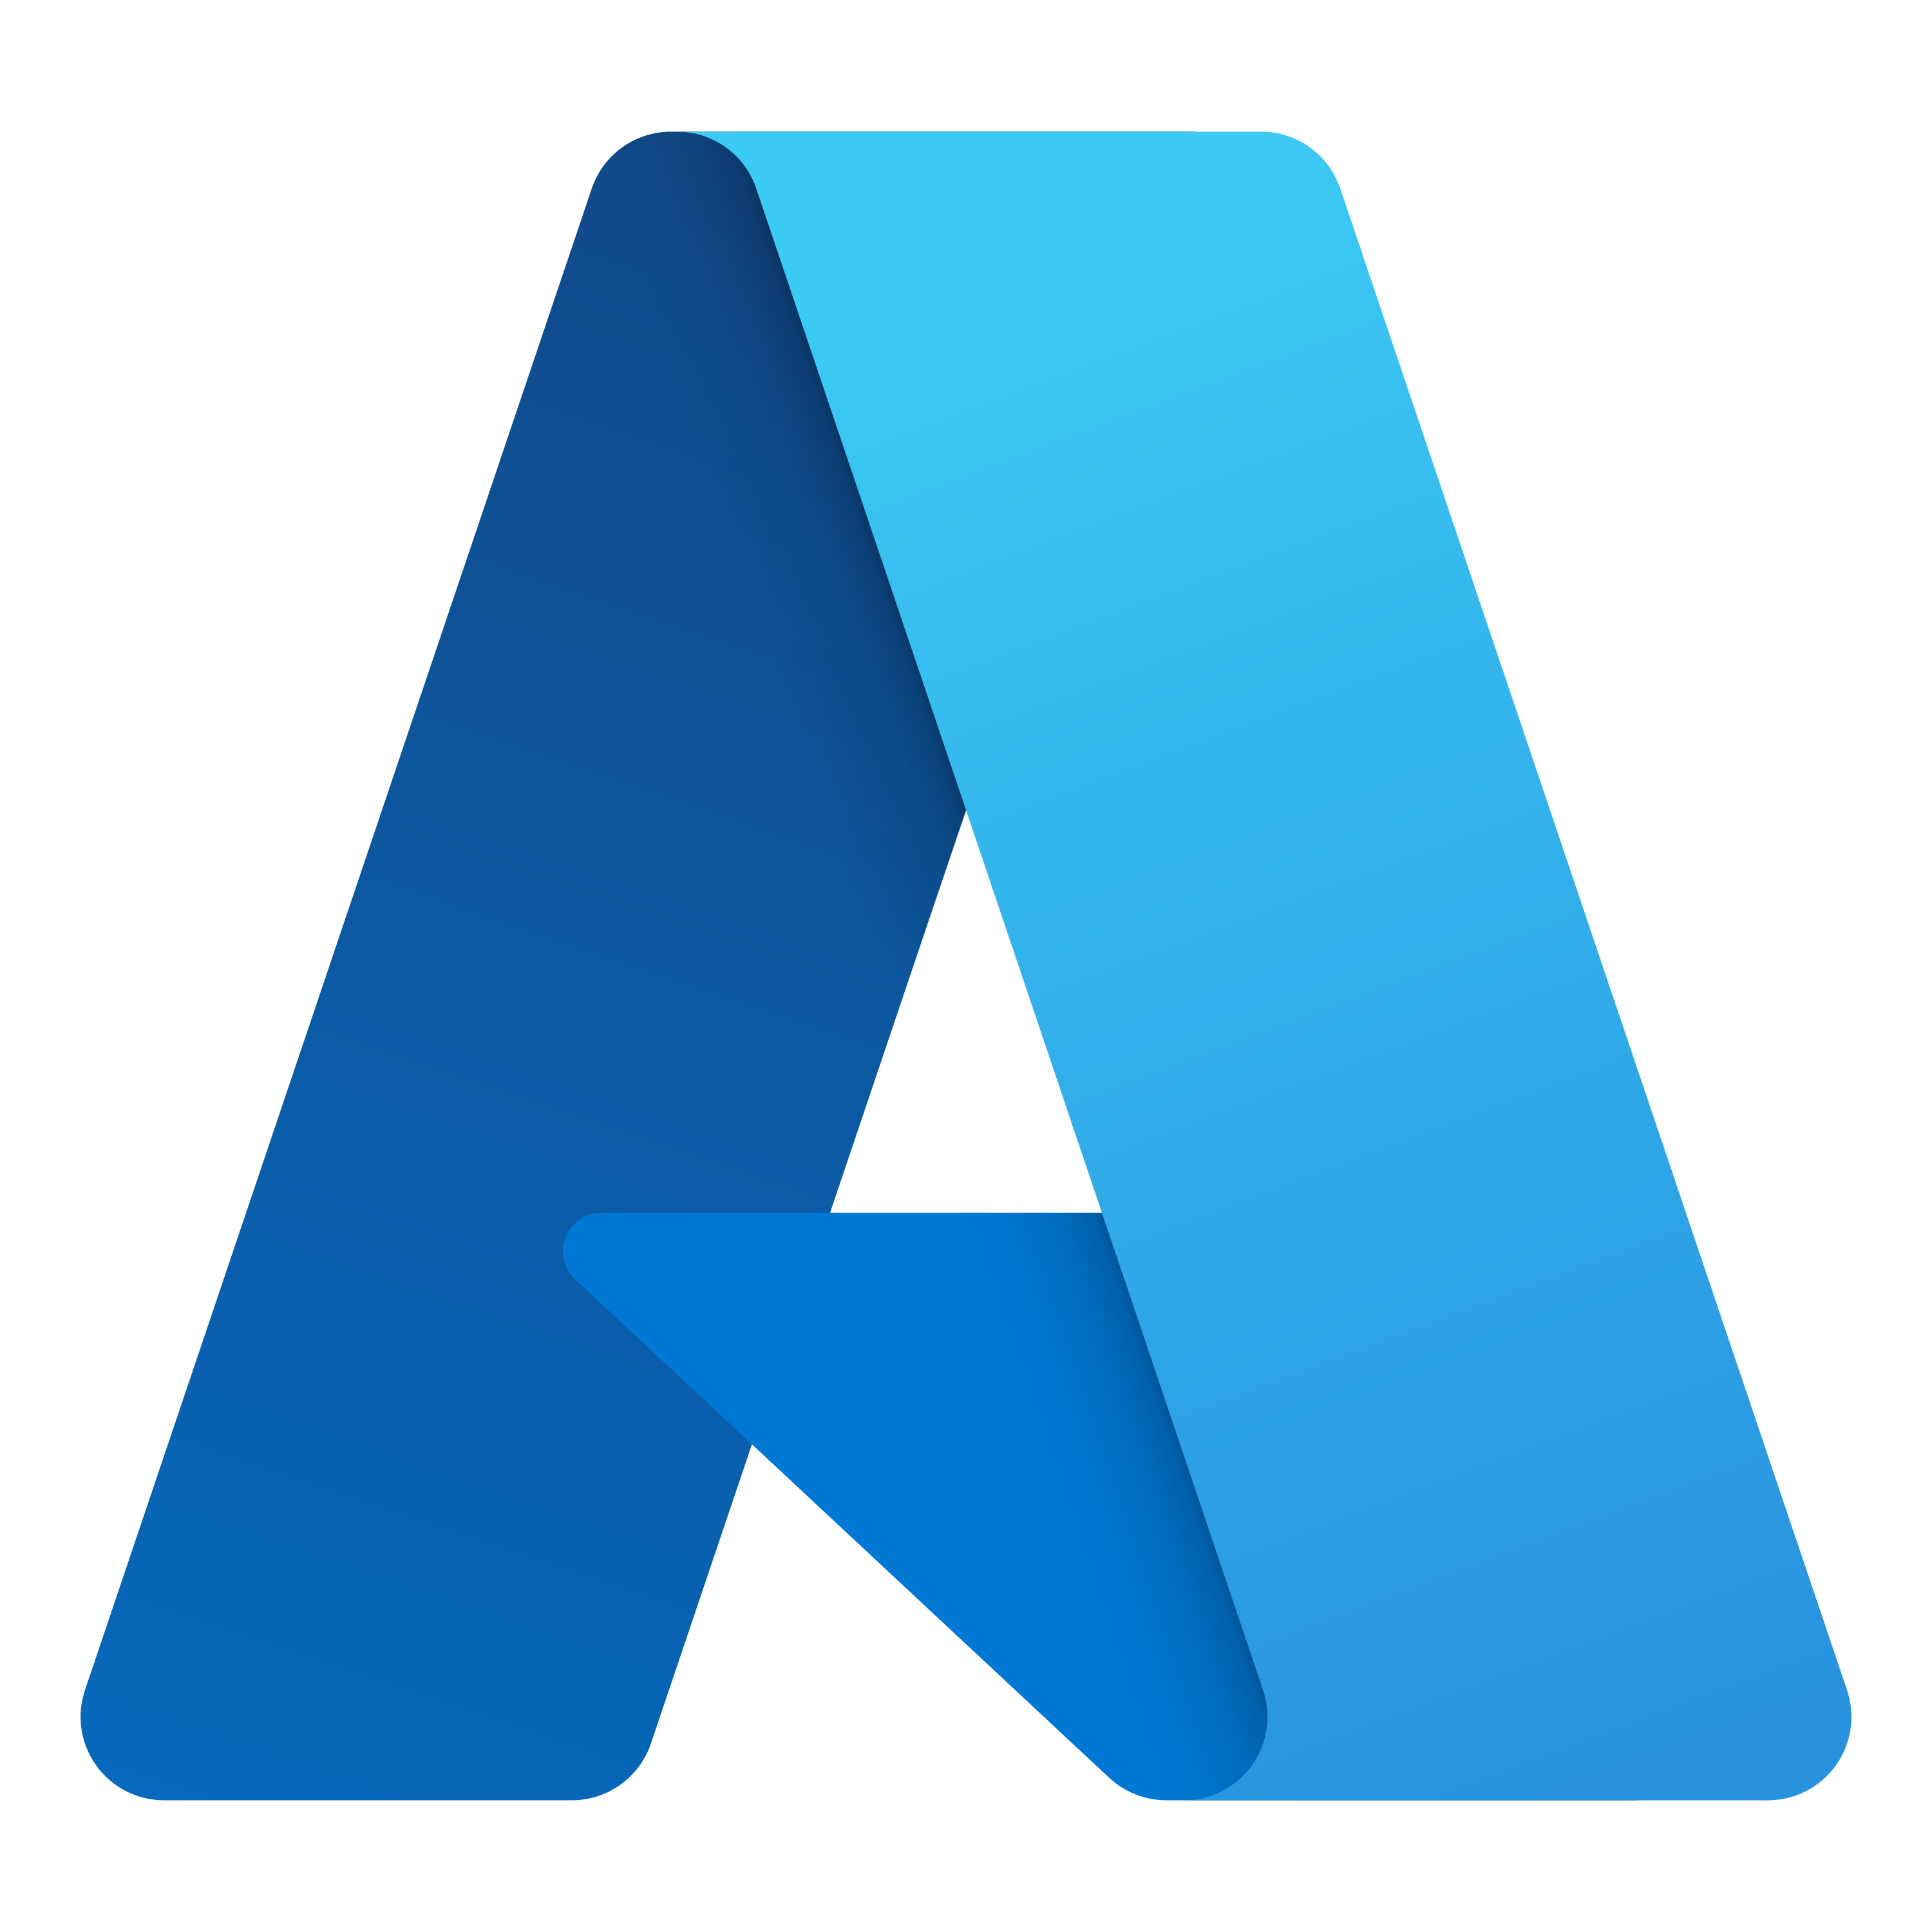 Azure Logo as PNG file with transparent background in high resolution